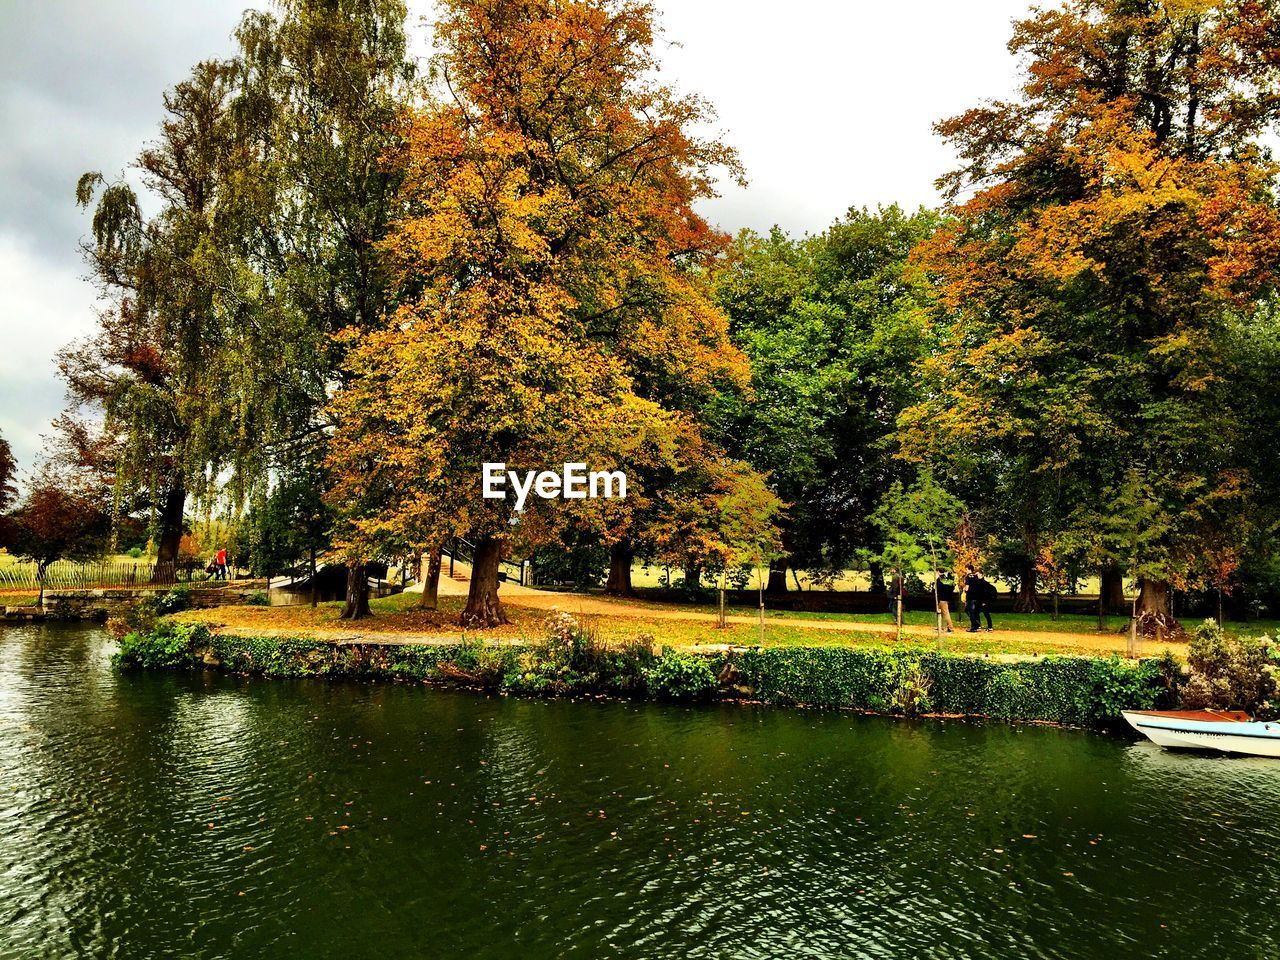 tree, autumn, water, change, nature, beauty in nature, lake, scenics, day, growth, outdoors, incidental people, leaf, waterfront, tranquility, tranquil scene, large group of people, travel destinations, sky, real people, people